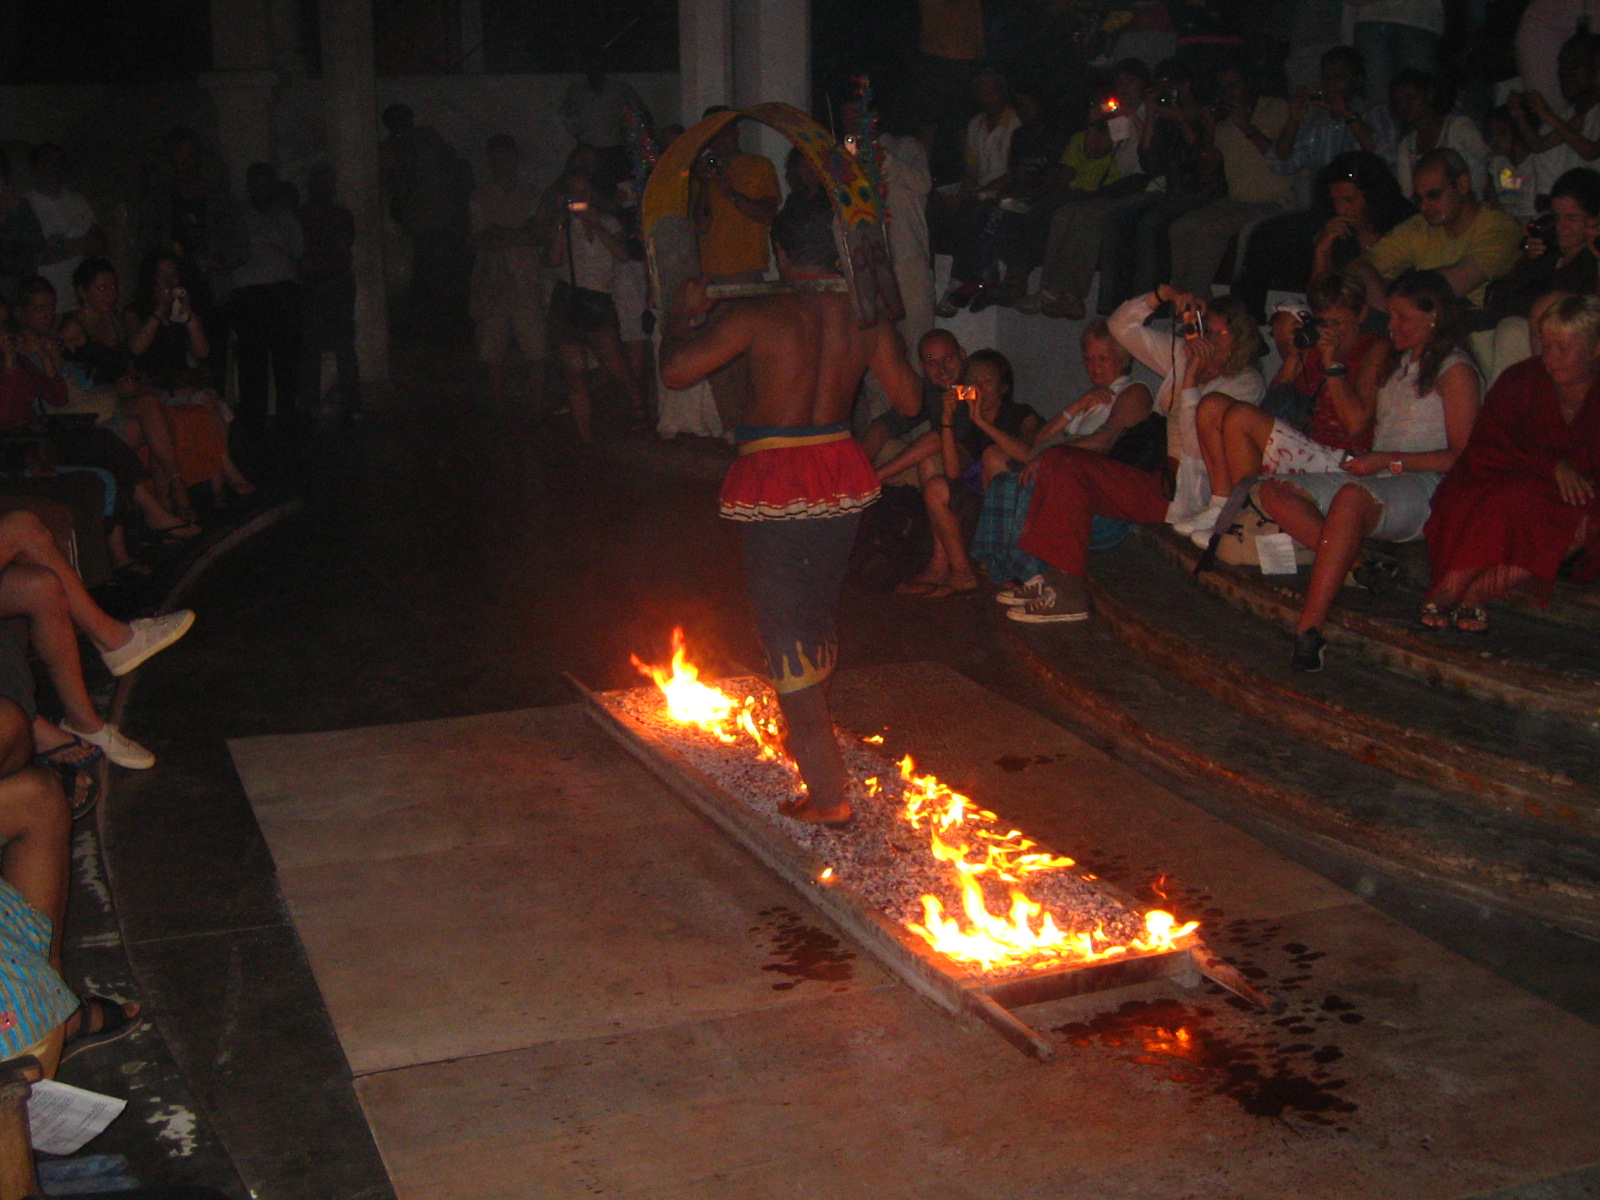 Firewalking - Wikipedia